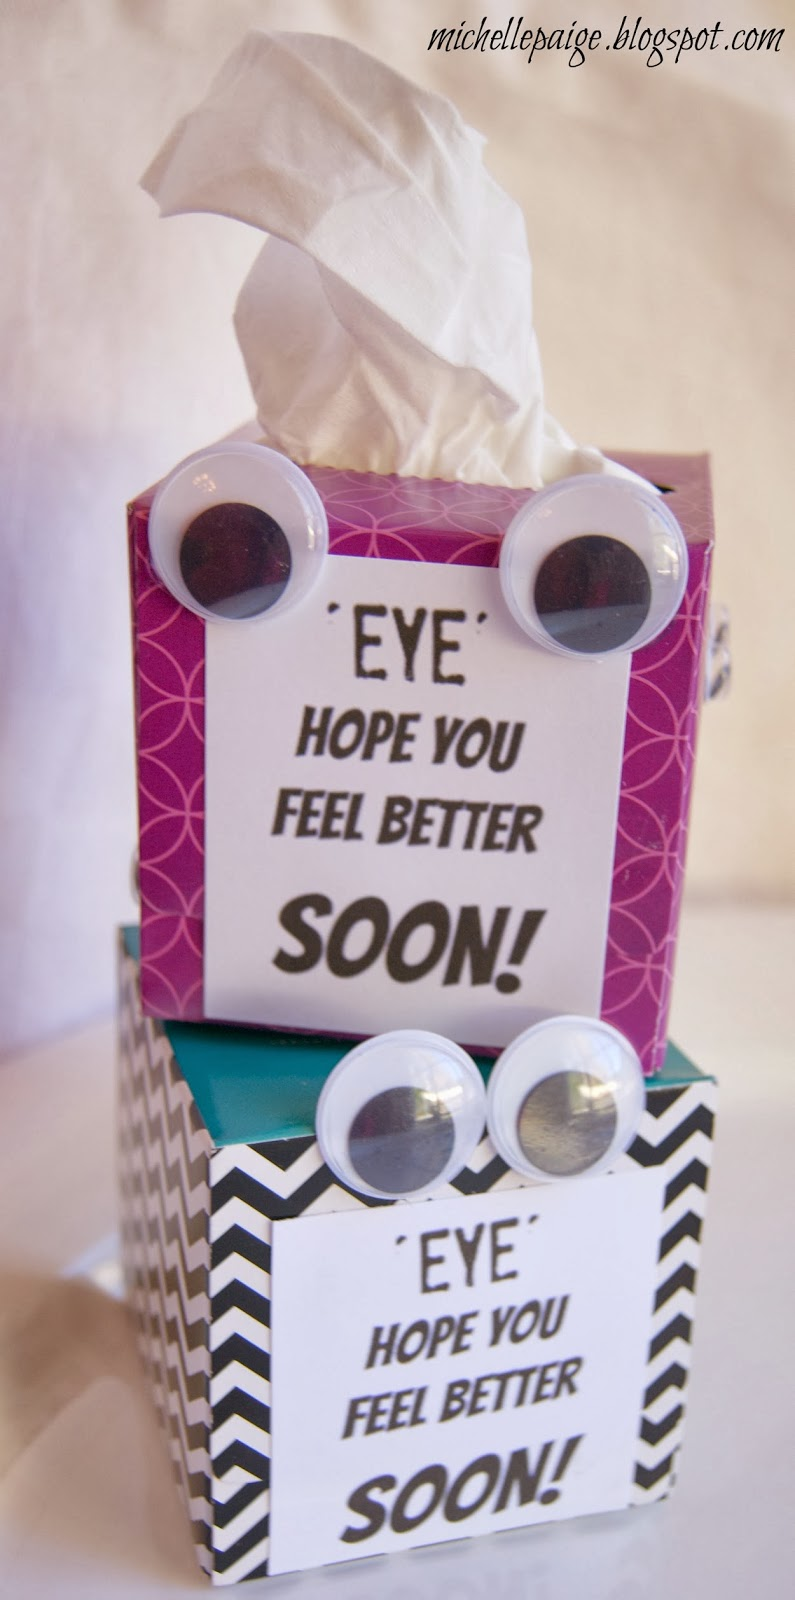 Cute feel better gifts